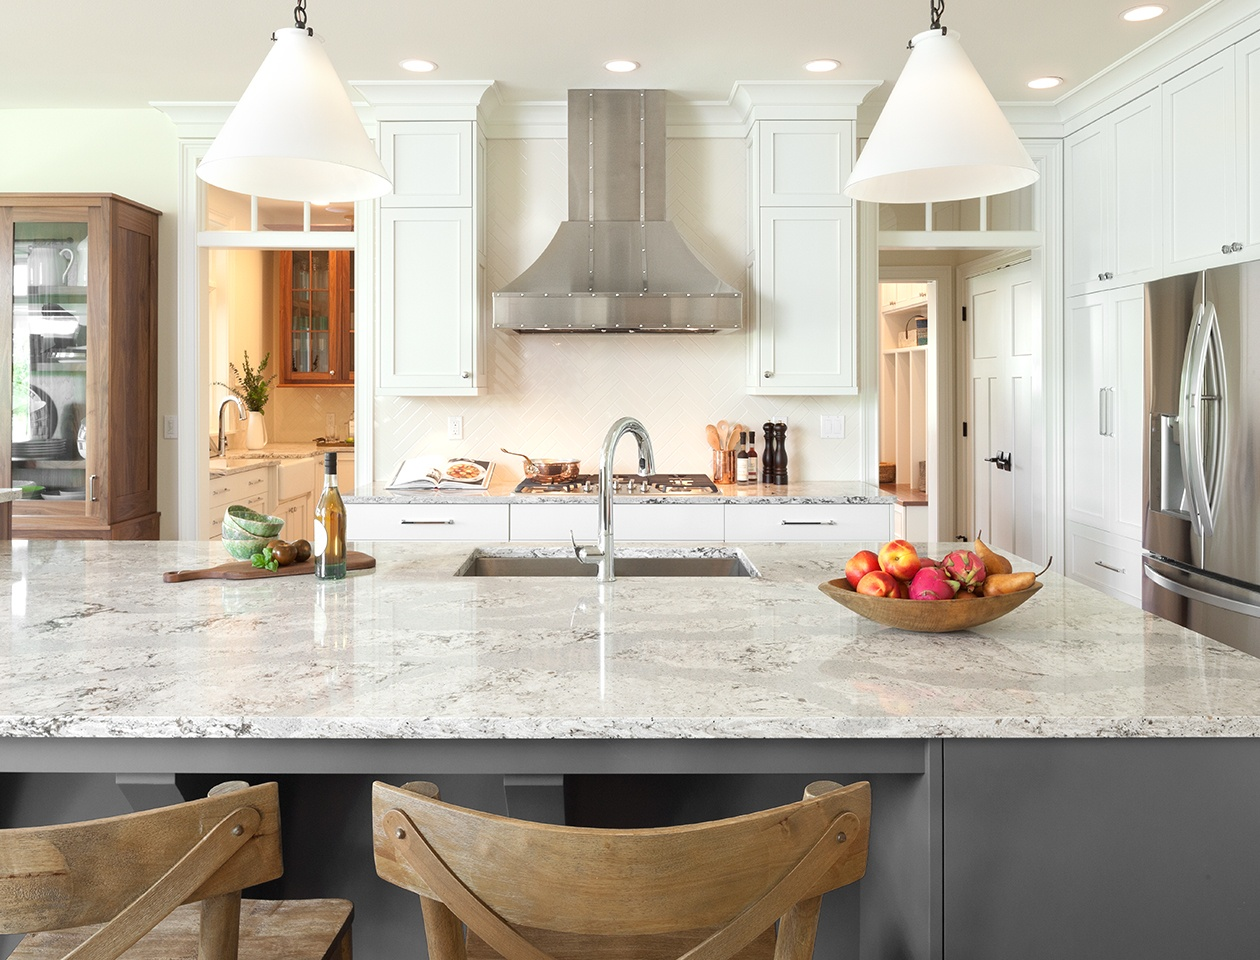 Stunning Quartz Countertop Colors To Gather Inspiration From - Quartz countertops colors for kitchens